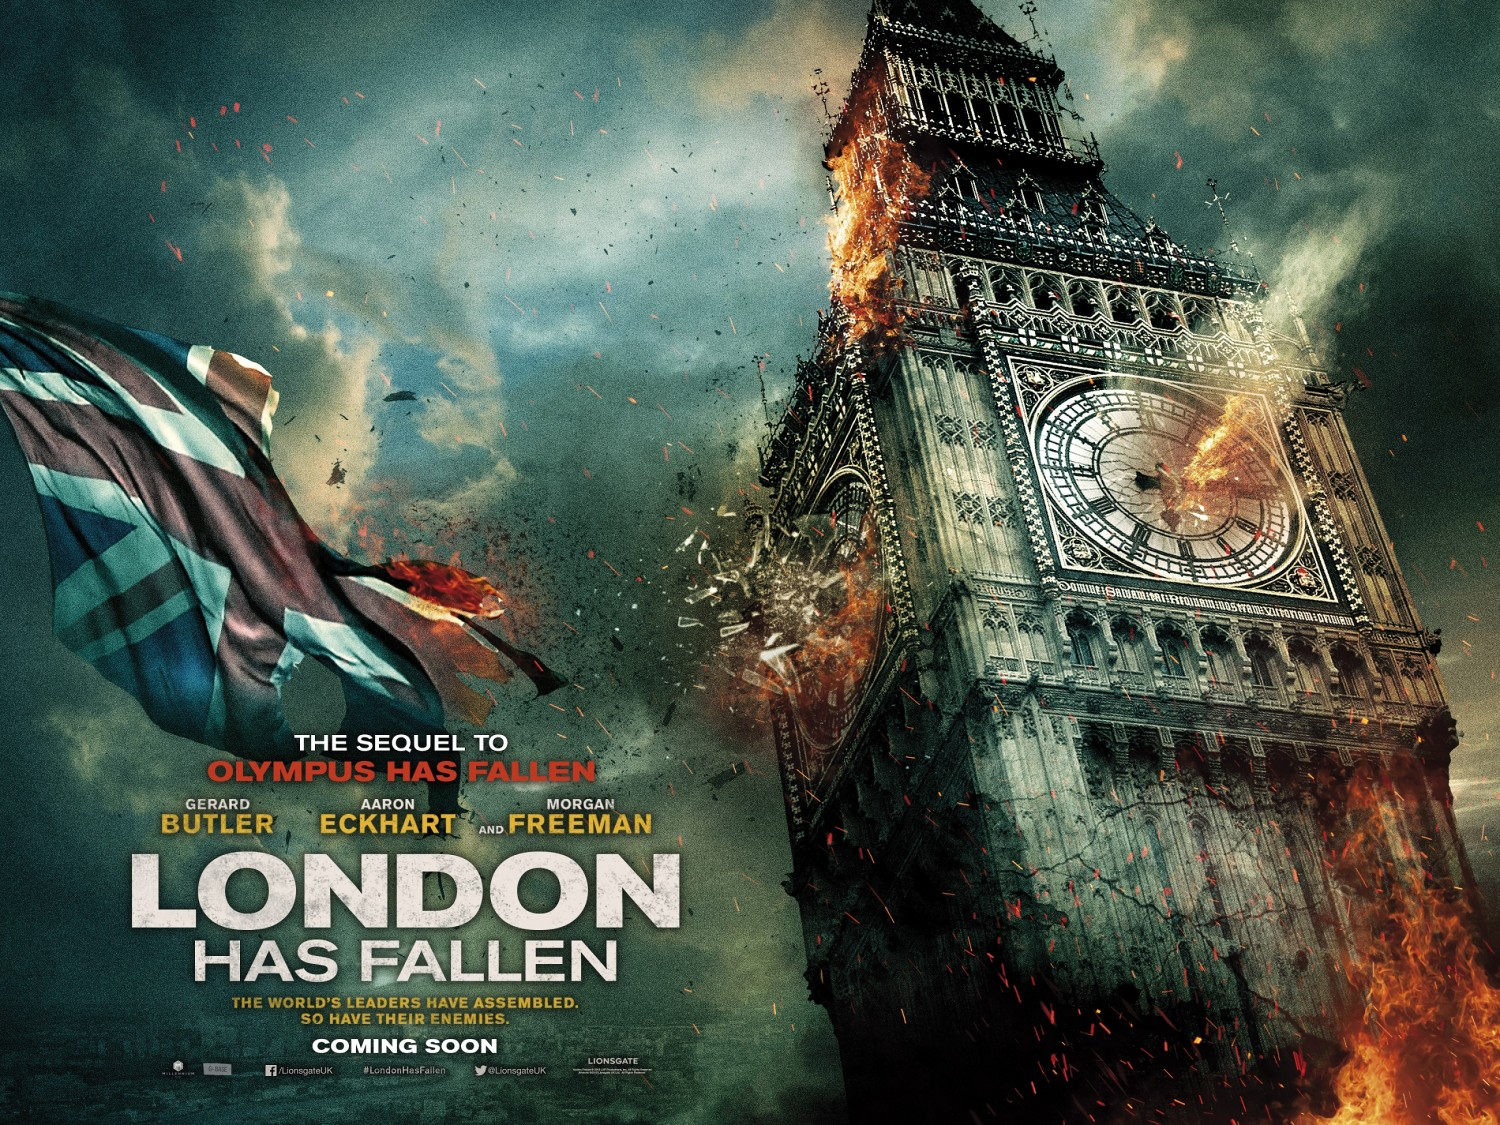 http://cdn3-www.comingsoon.net/assets/uploads/gallery/london-has-fallen_1/london_has_fallen_ver2_xlg.jpg